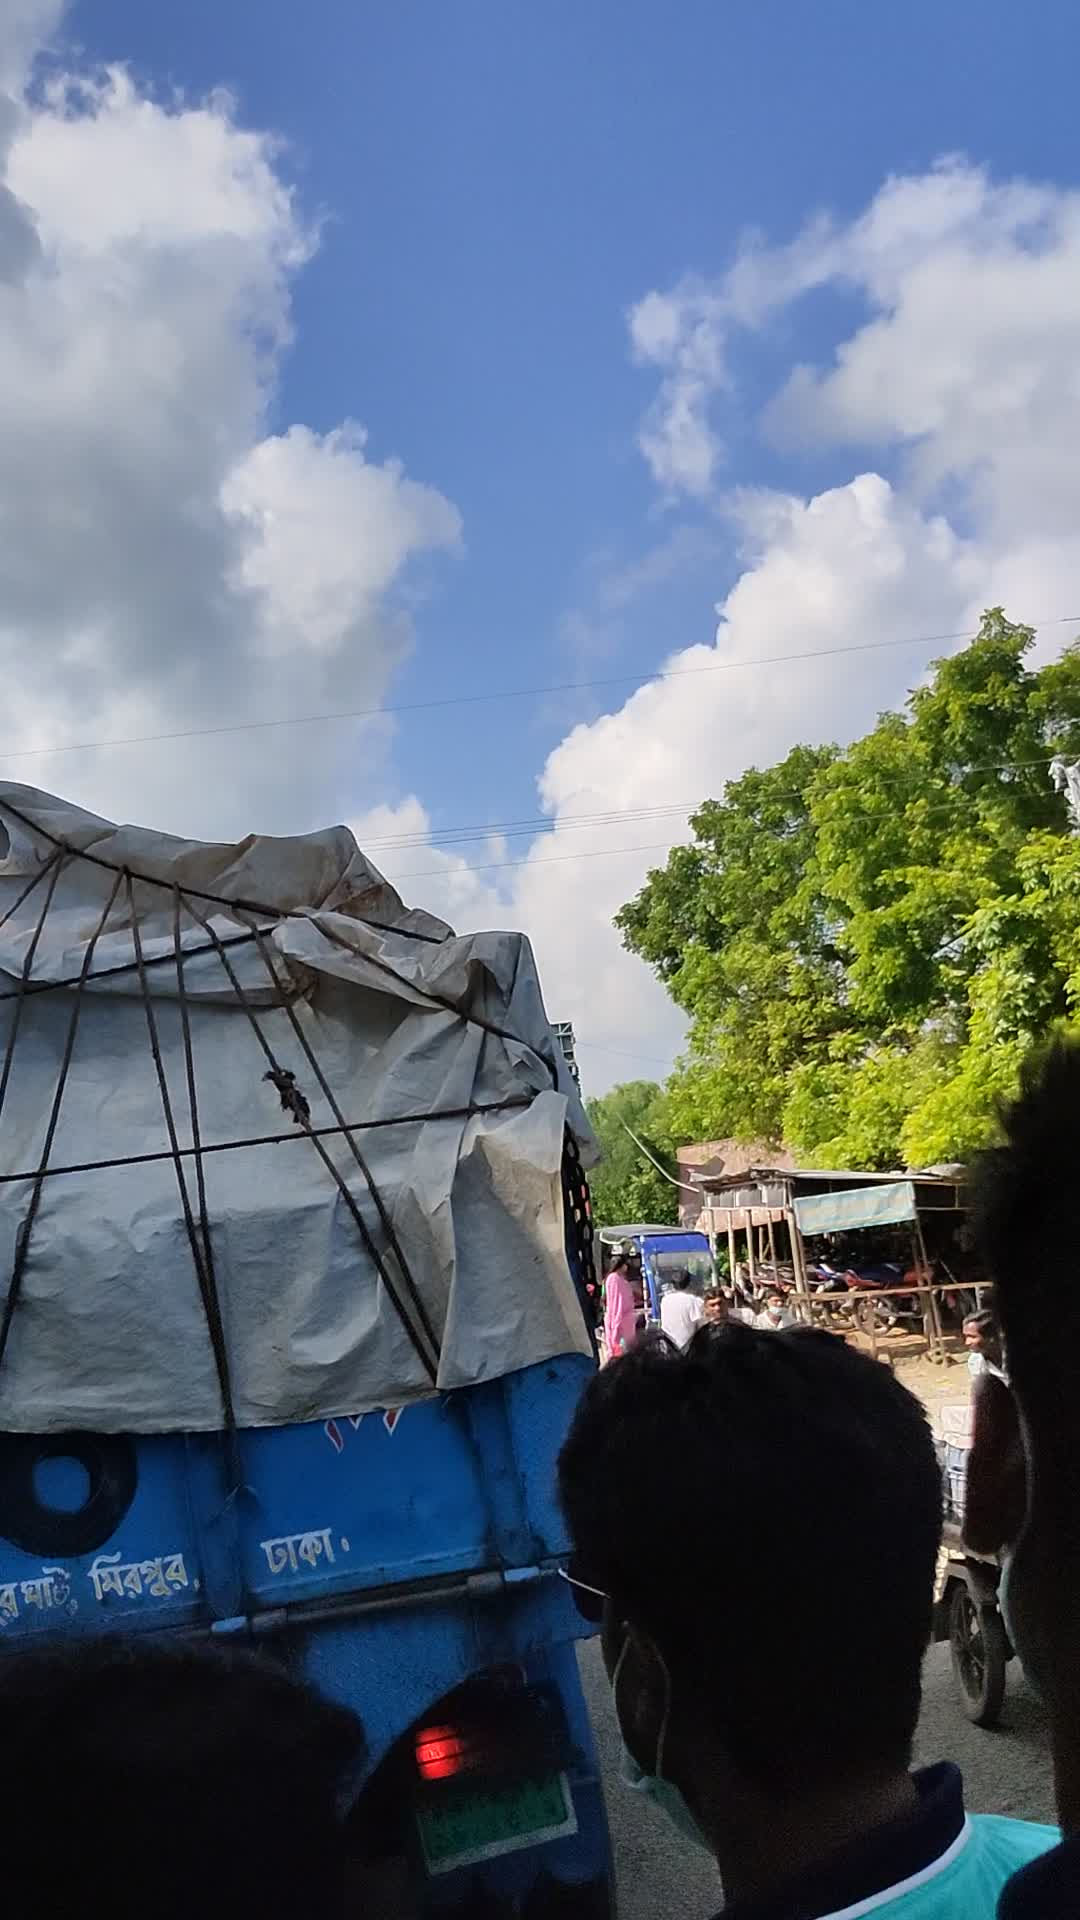 Street View, from the release worker's car,Bangladesh, Satkhira